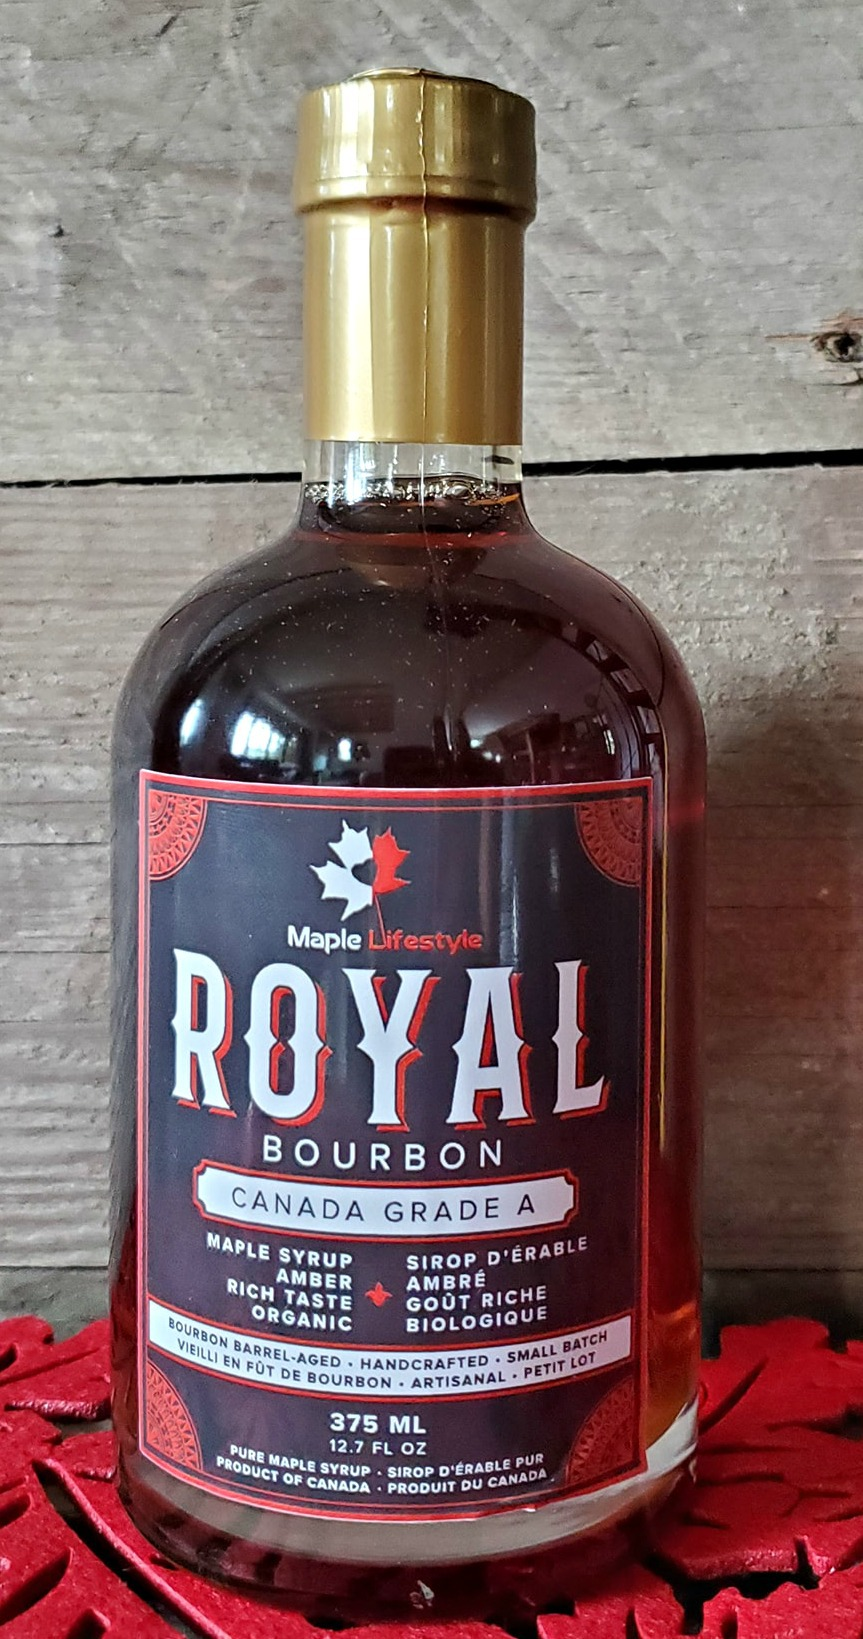 Royal Maple Lifestyles Bourbon Maple Syrup